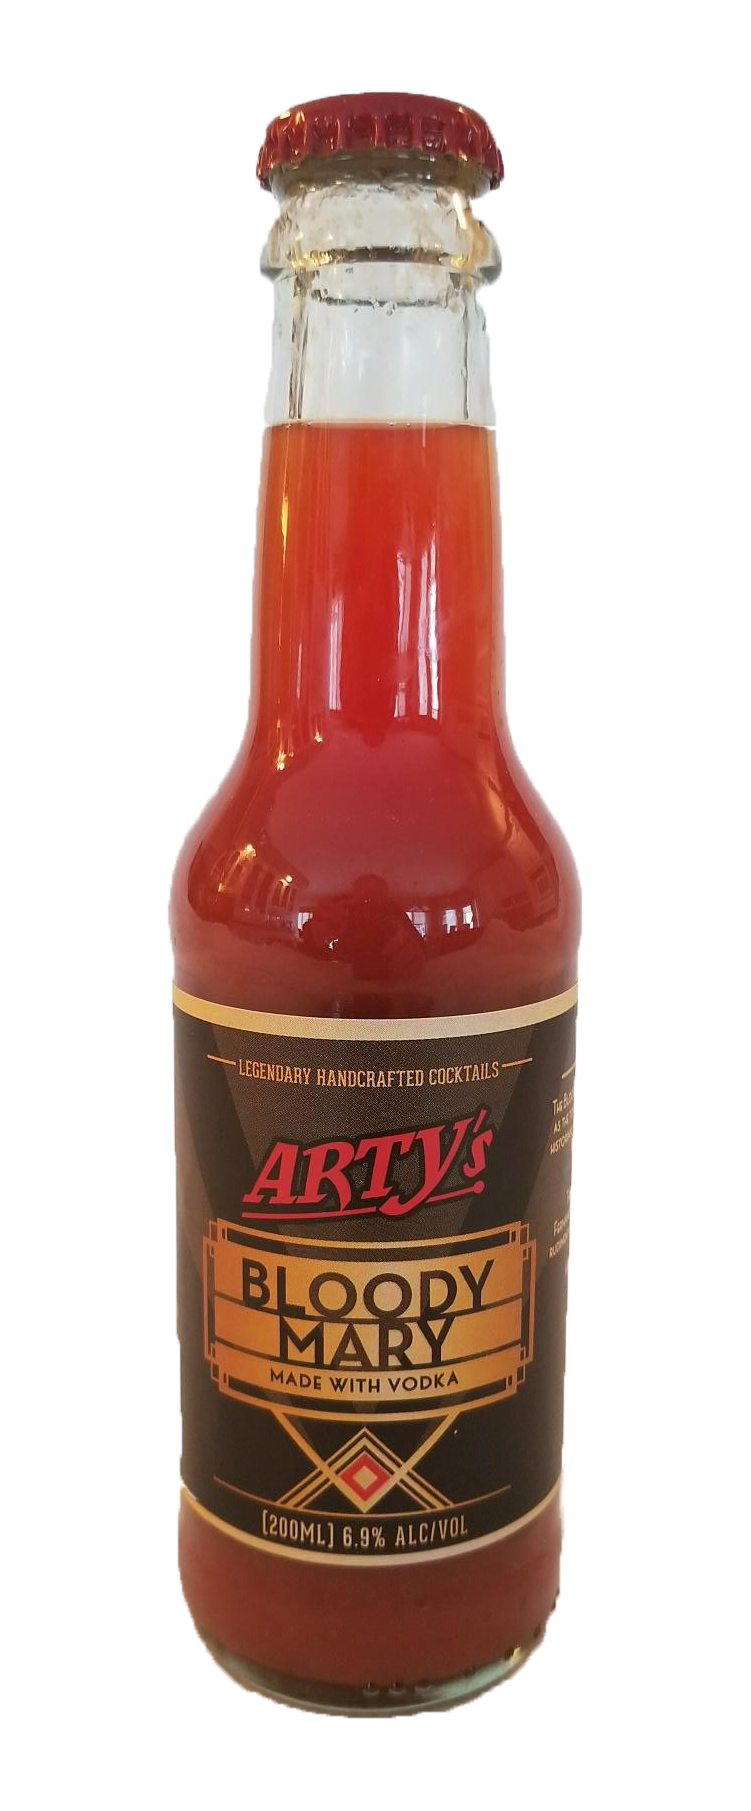 Artys-Bloody-Mary-BG